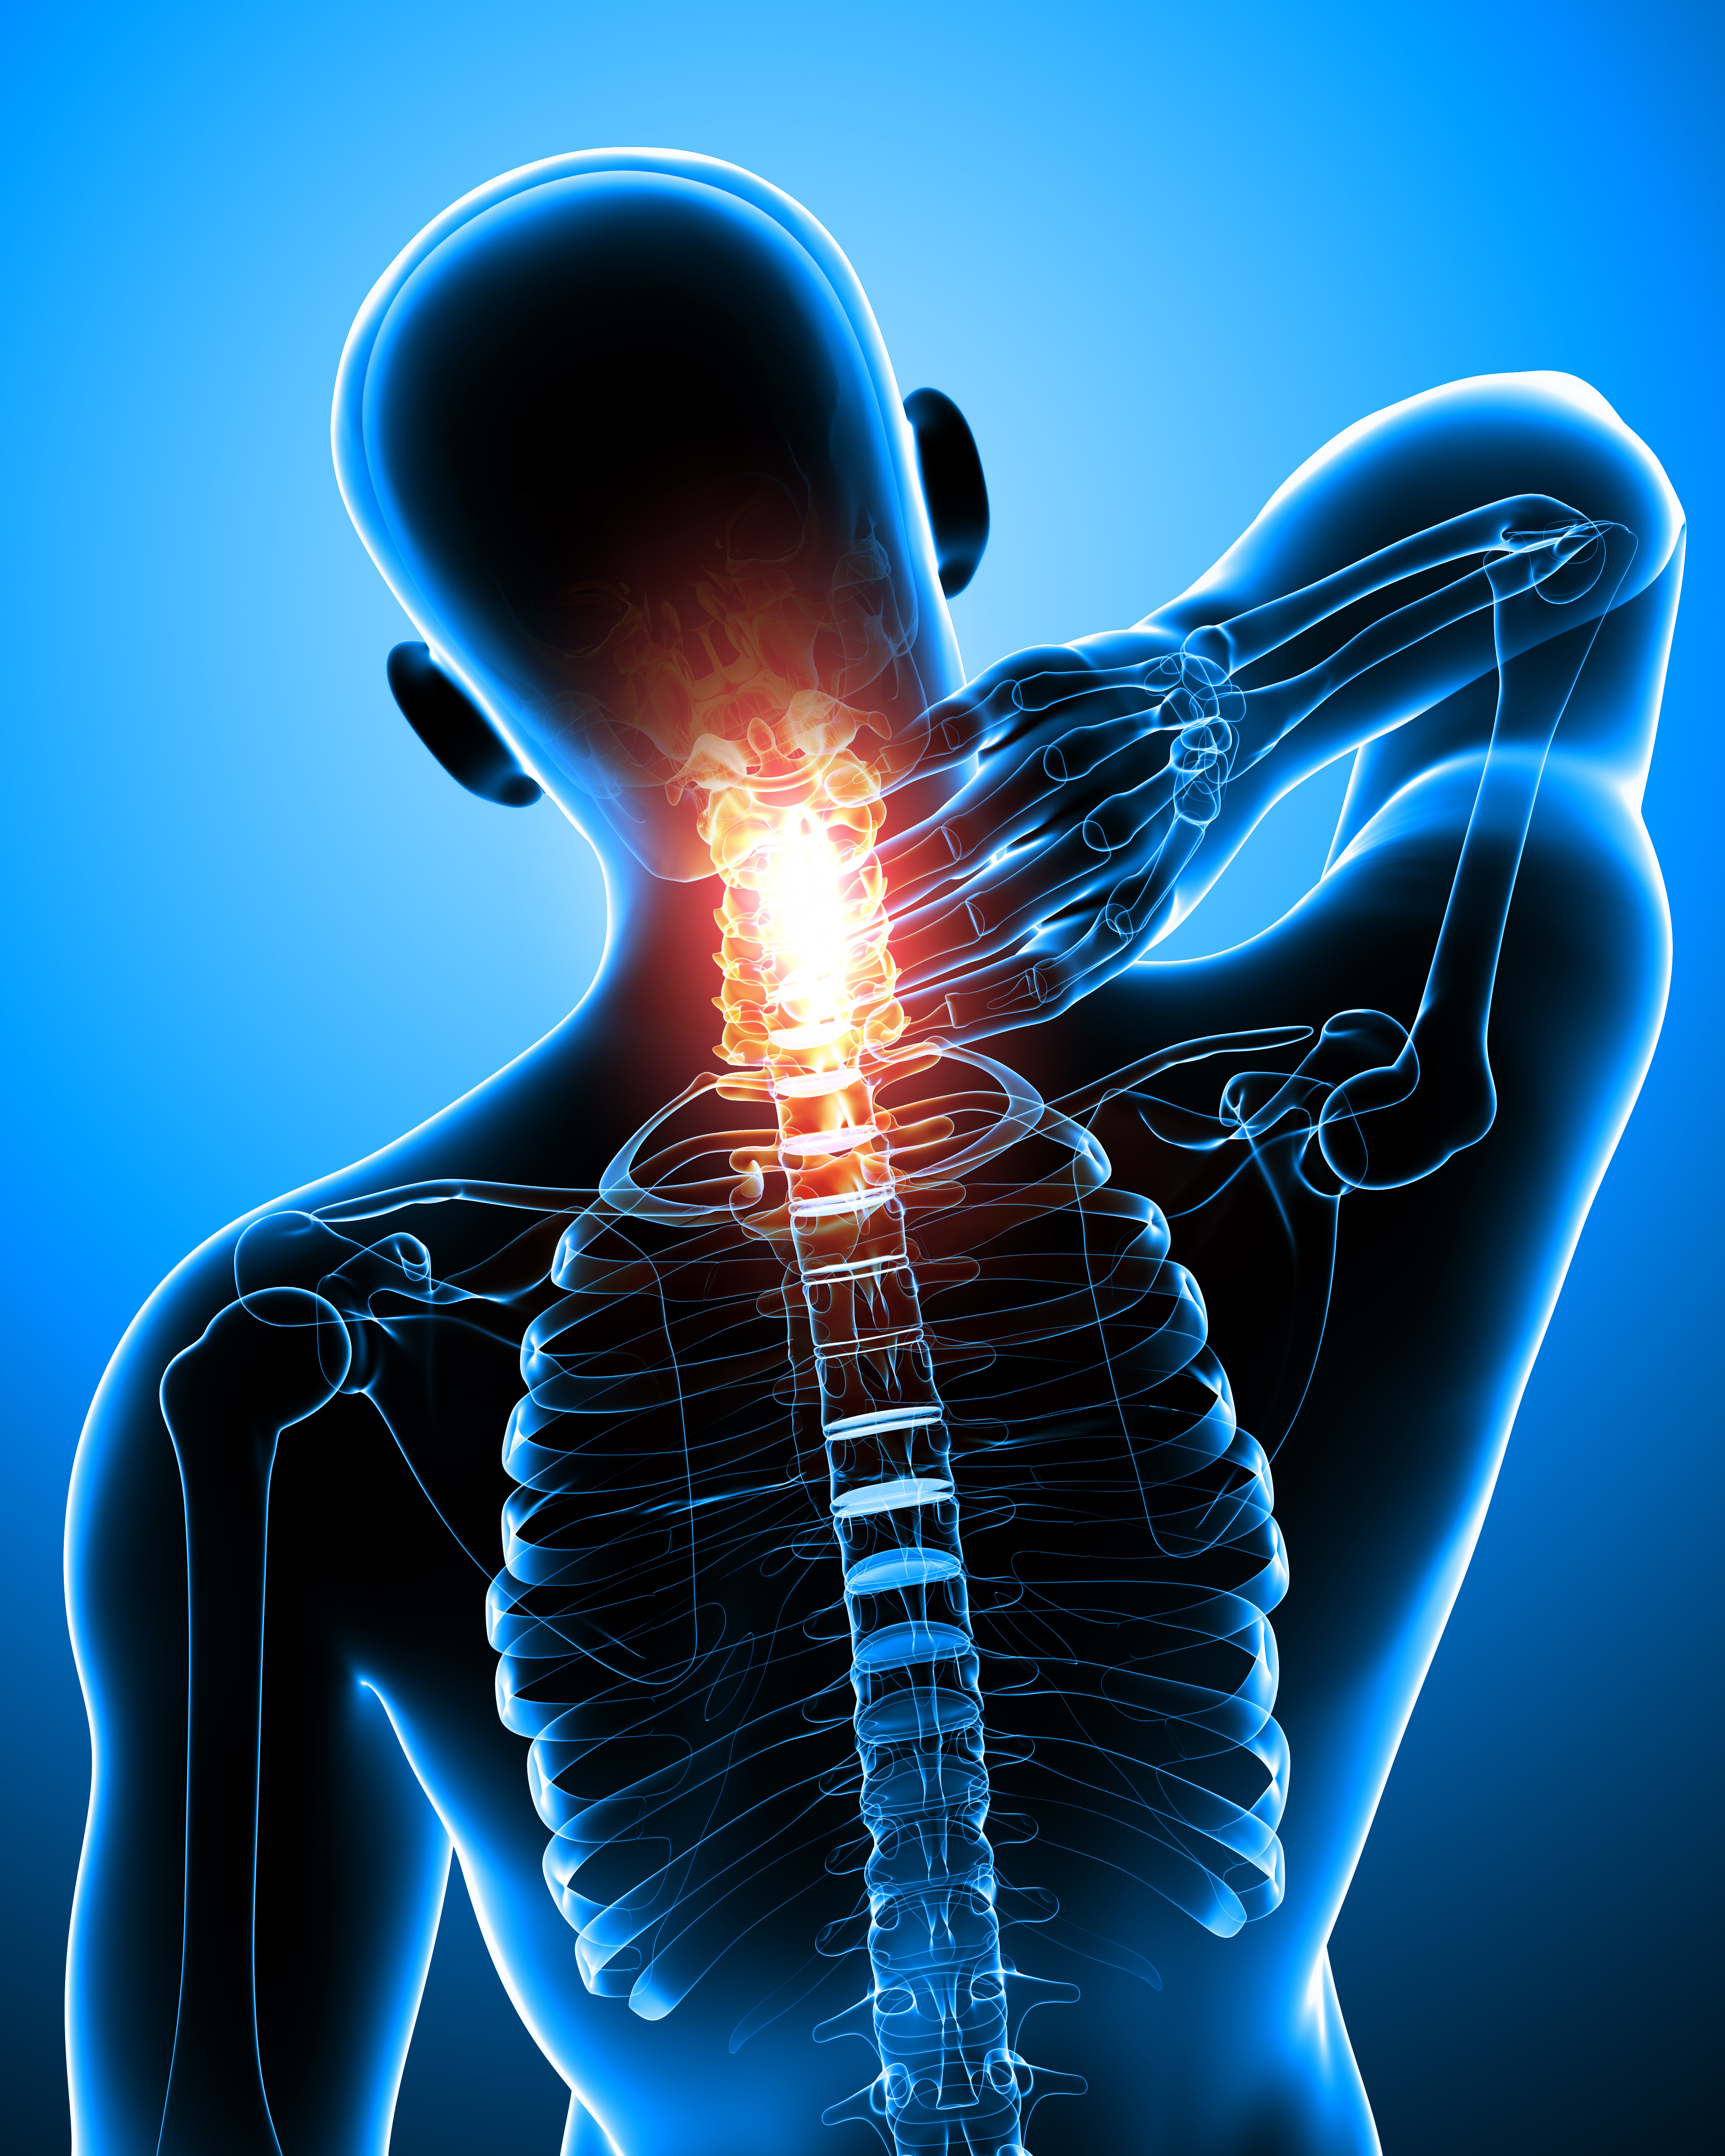 male neck pain anatomy in blue